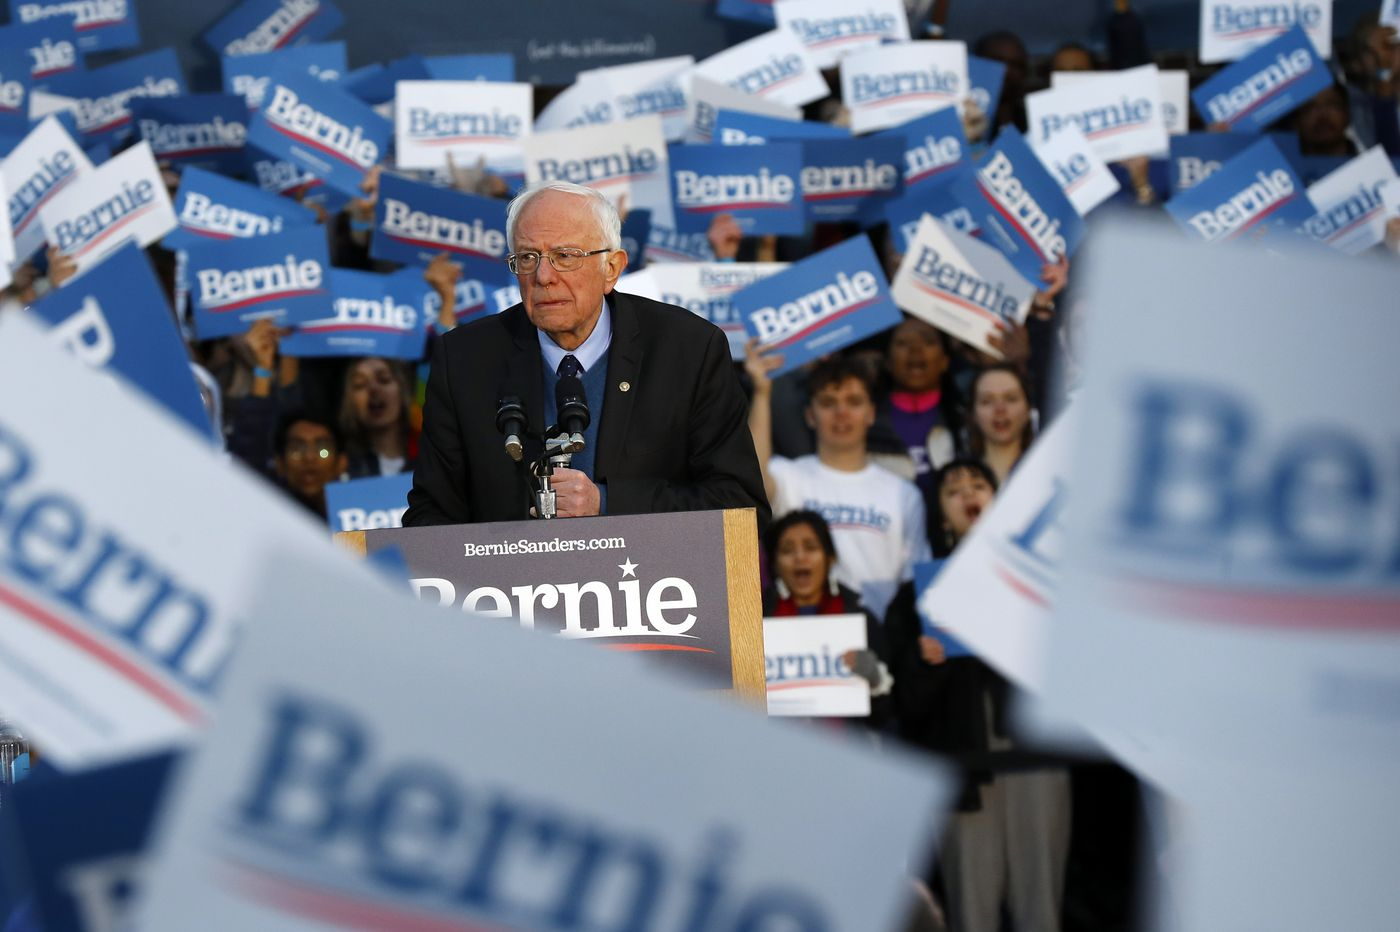 These Pennsylvanians love Bernie Sanders. What will they do now that he probably can't win?